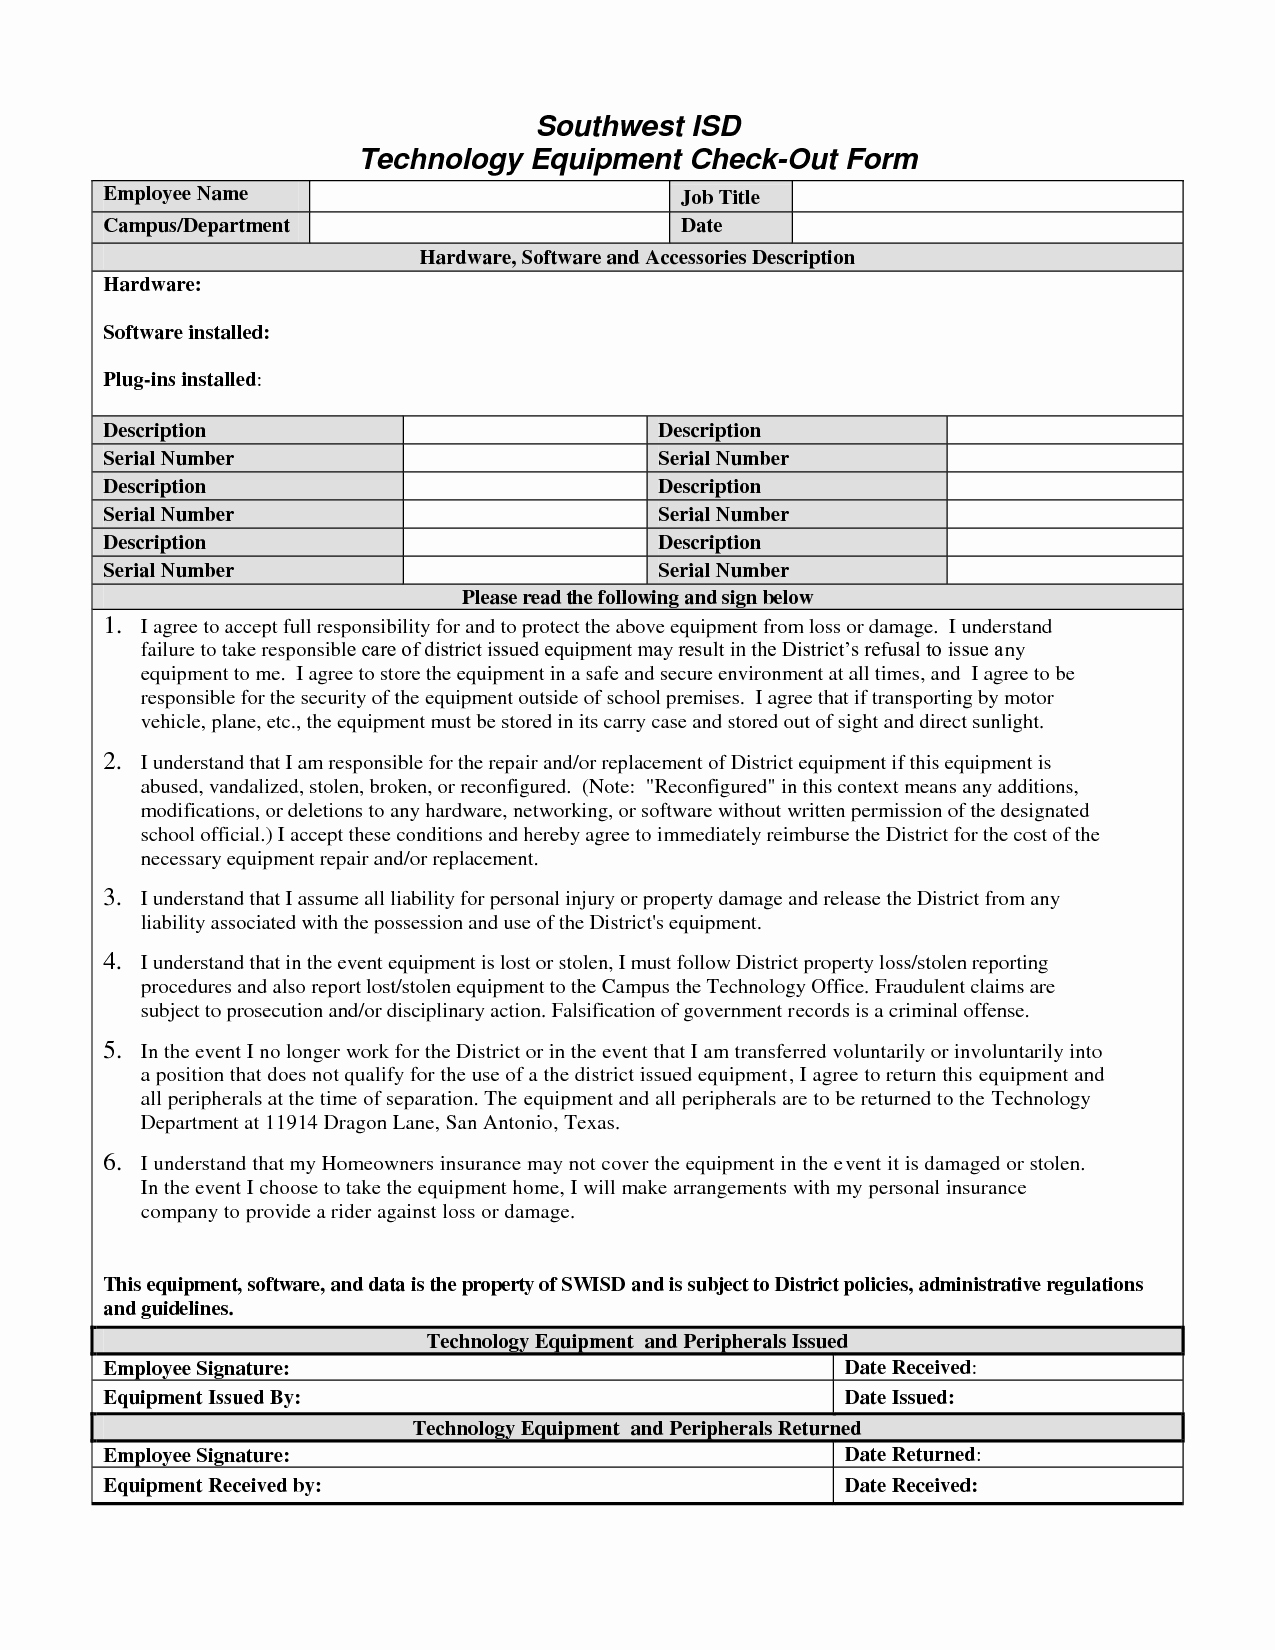 Best S Of Employee Equipment Check Out form